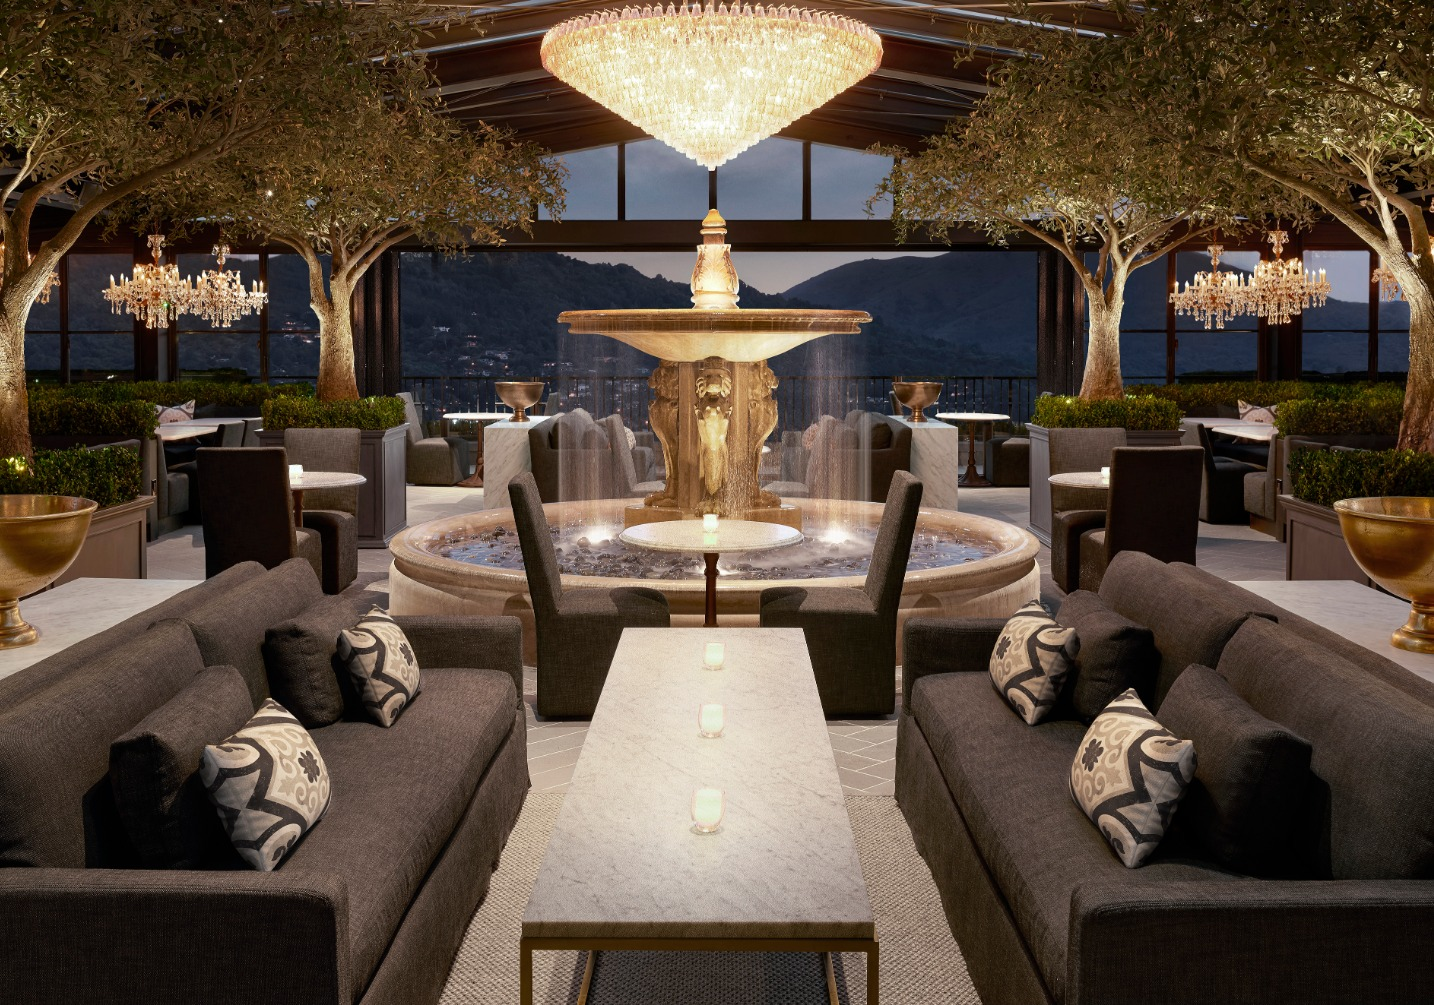 Dining room of RH Rooftop Restaurant with fountain and sofas